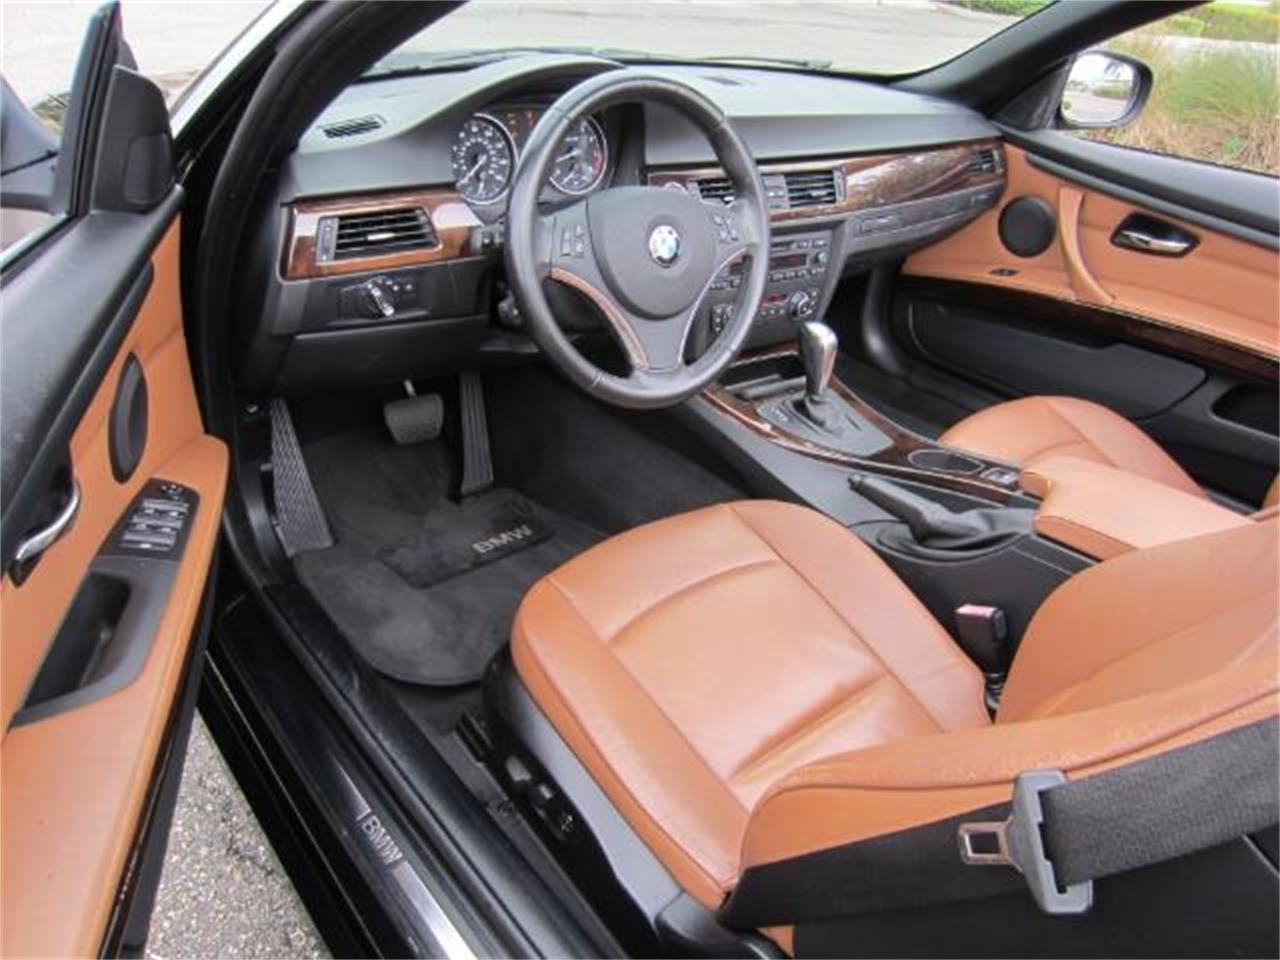 2011 BMW 328i for sale in Delray Beach, FL – photo 11